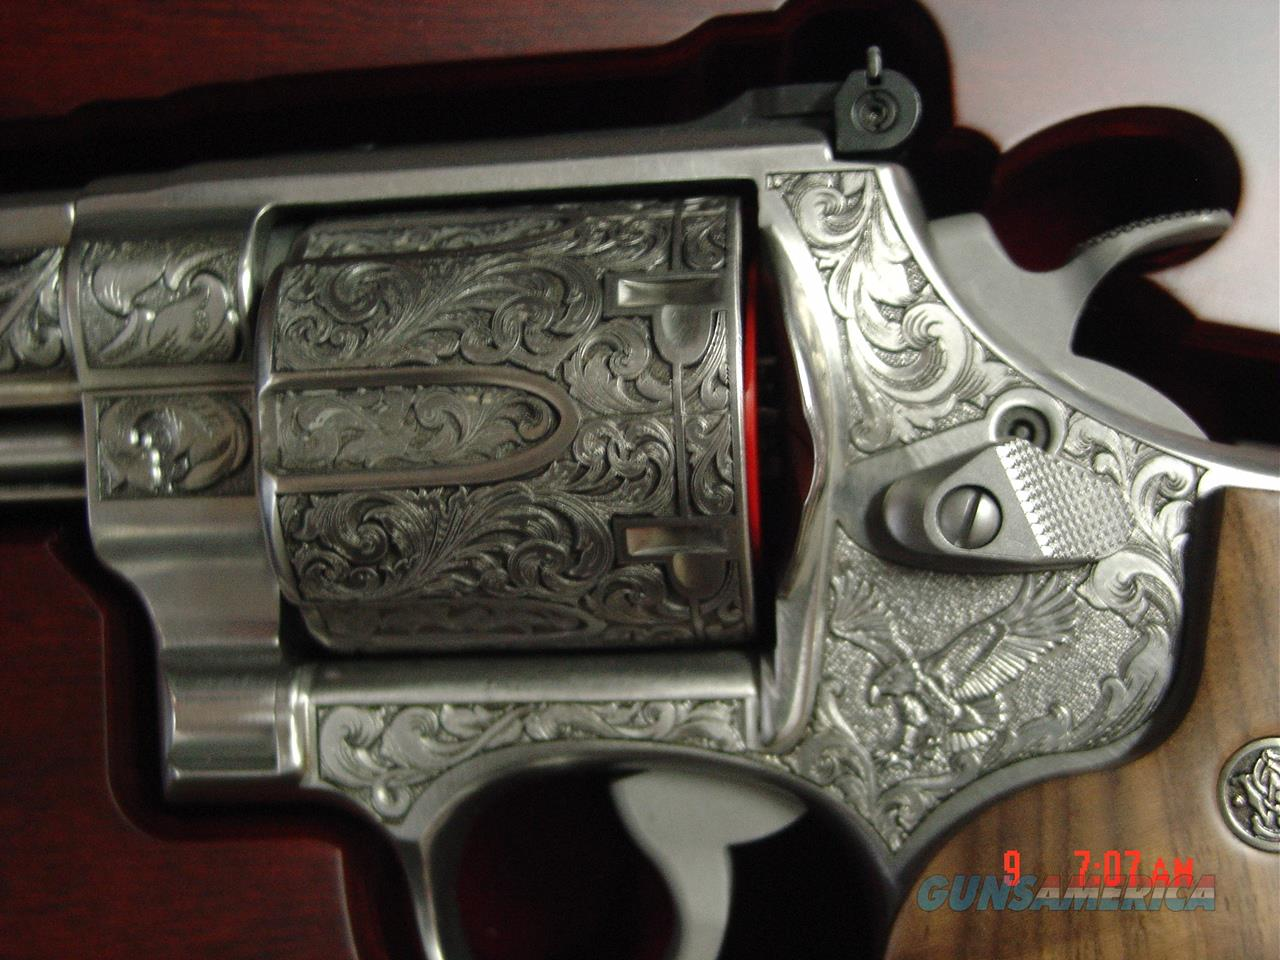 "Smith & Wesson 629-6, The Rising Eagle,fully deep relief engraved by Merlin Enright at Altamonte,6 1/2"",44 mag,carved walnut grips,fitted pres case. awesome engraving. # 200 of 300,& way nicer in person  Guns > Pistols > Smith & Wesson Revolvers > Model 629"